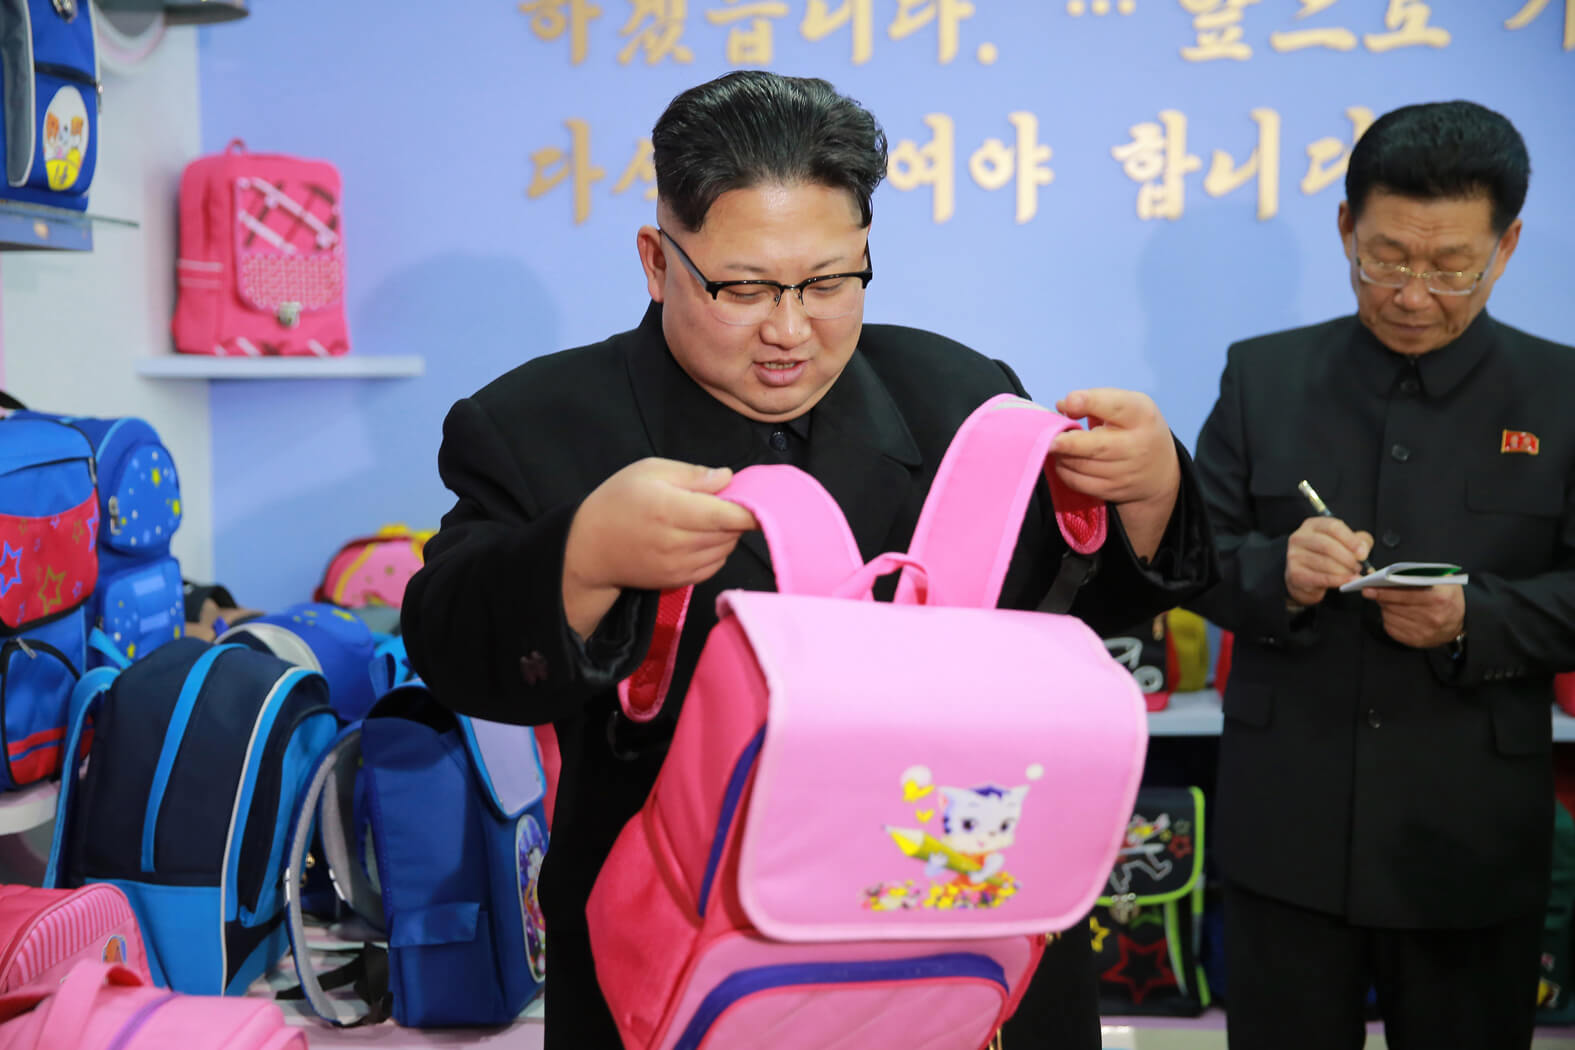 Kim Jong Un giving field guidance at the Pyongyang Bag Factory in January 2017